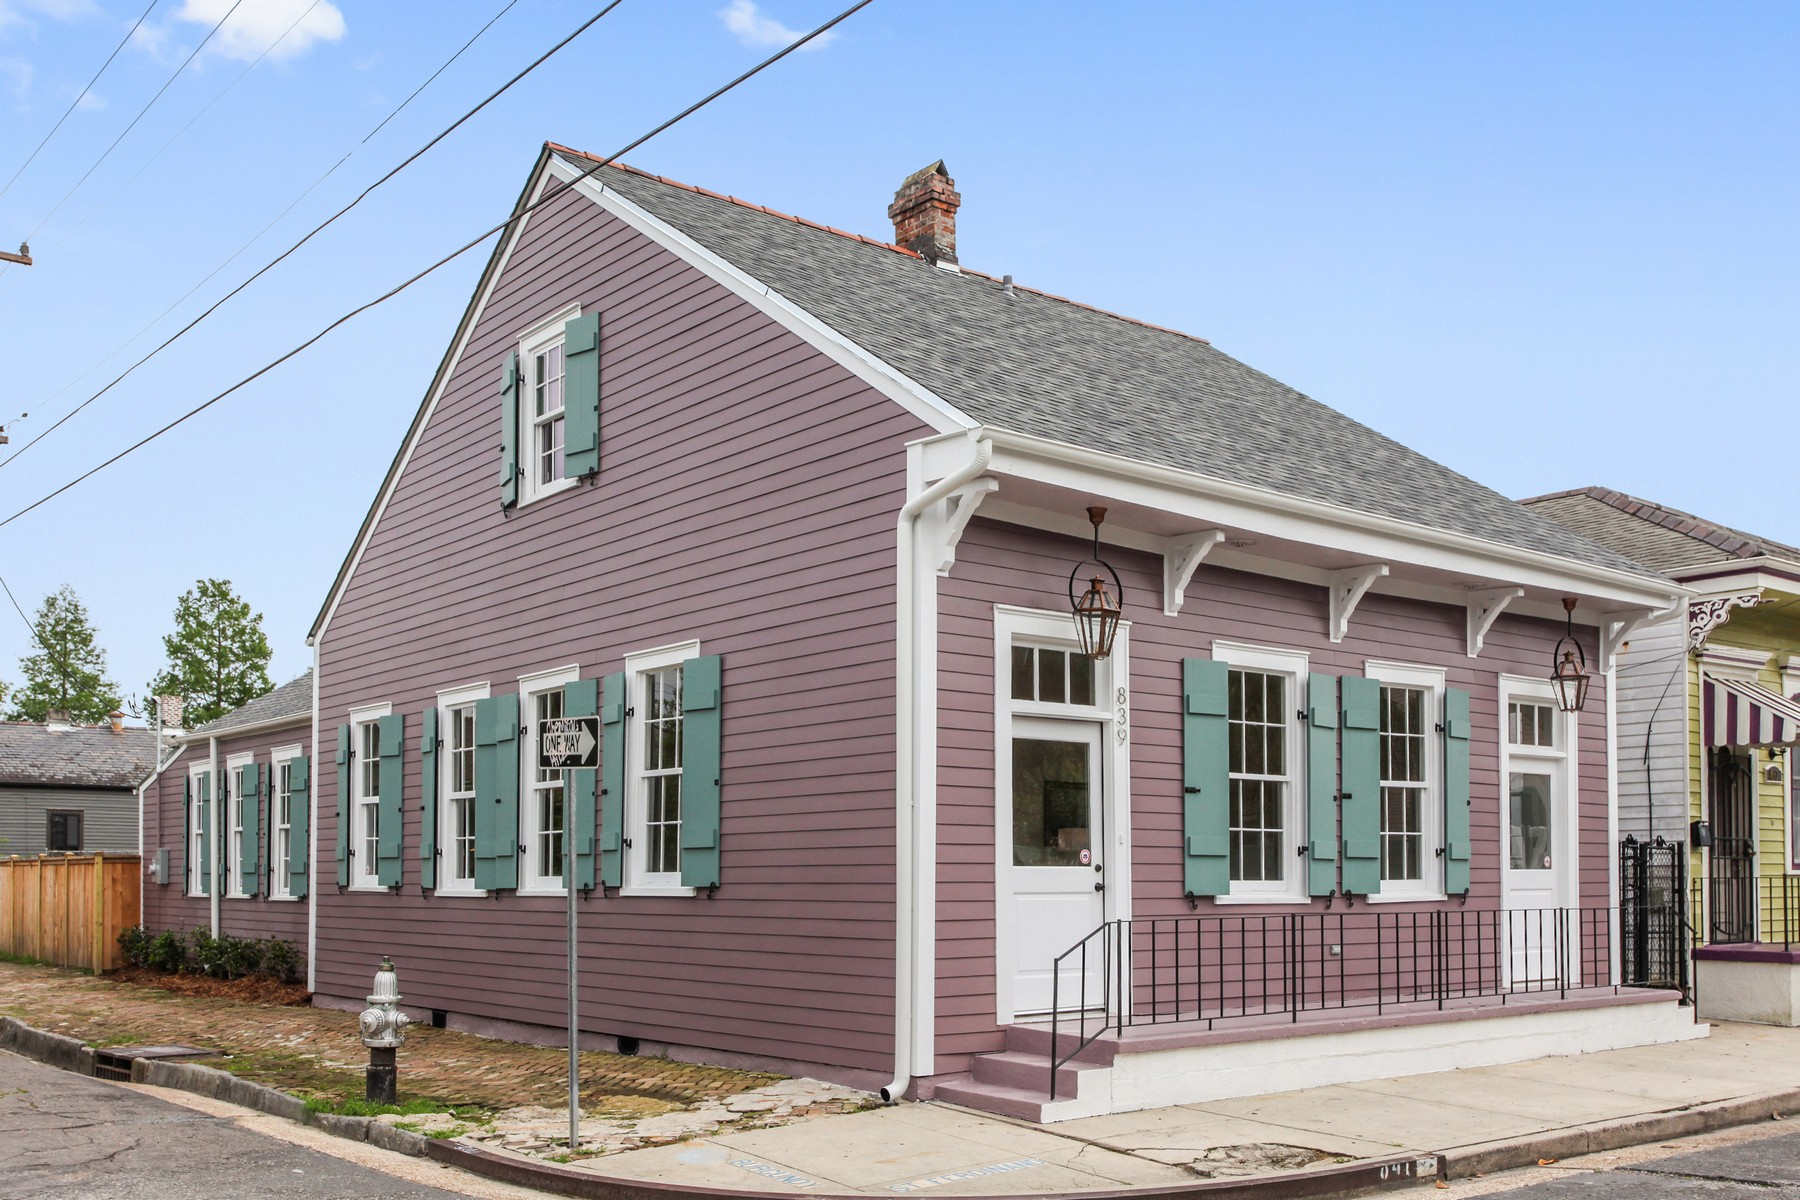 Single Family Home for Sale at 839 839 St Ferdinand Street New Orleans, Louisiana, 70117 United States